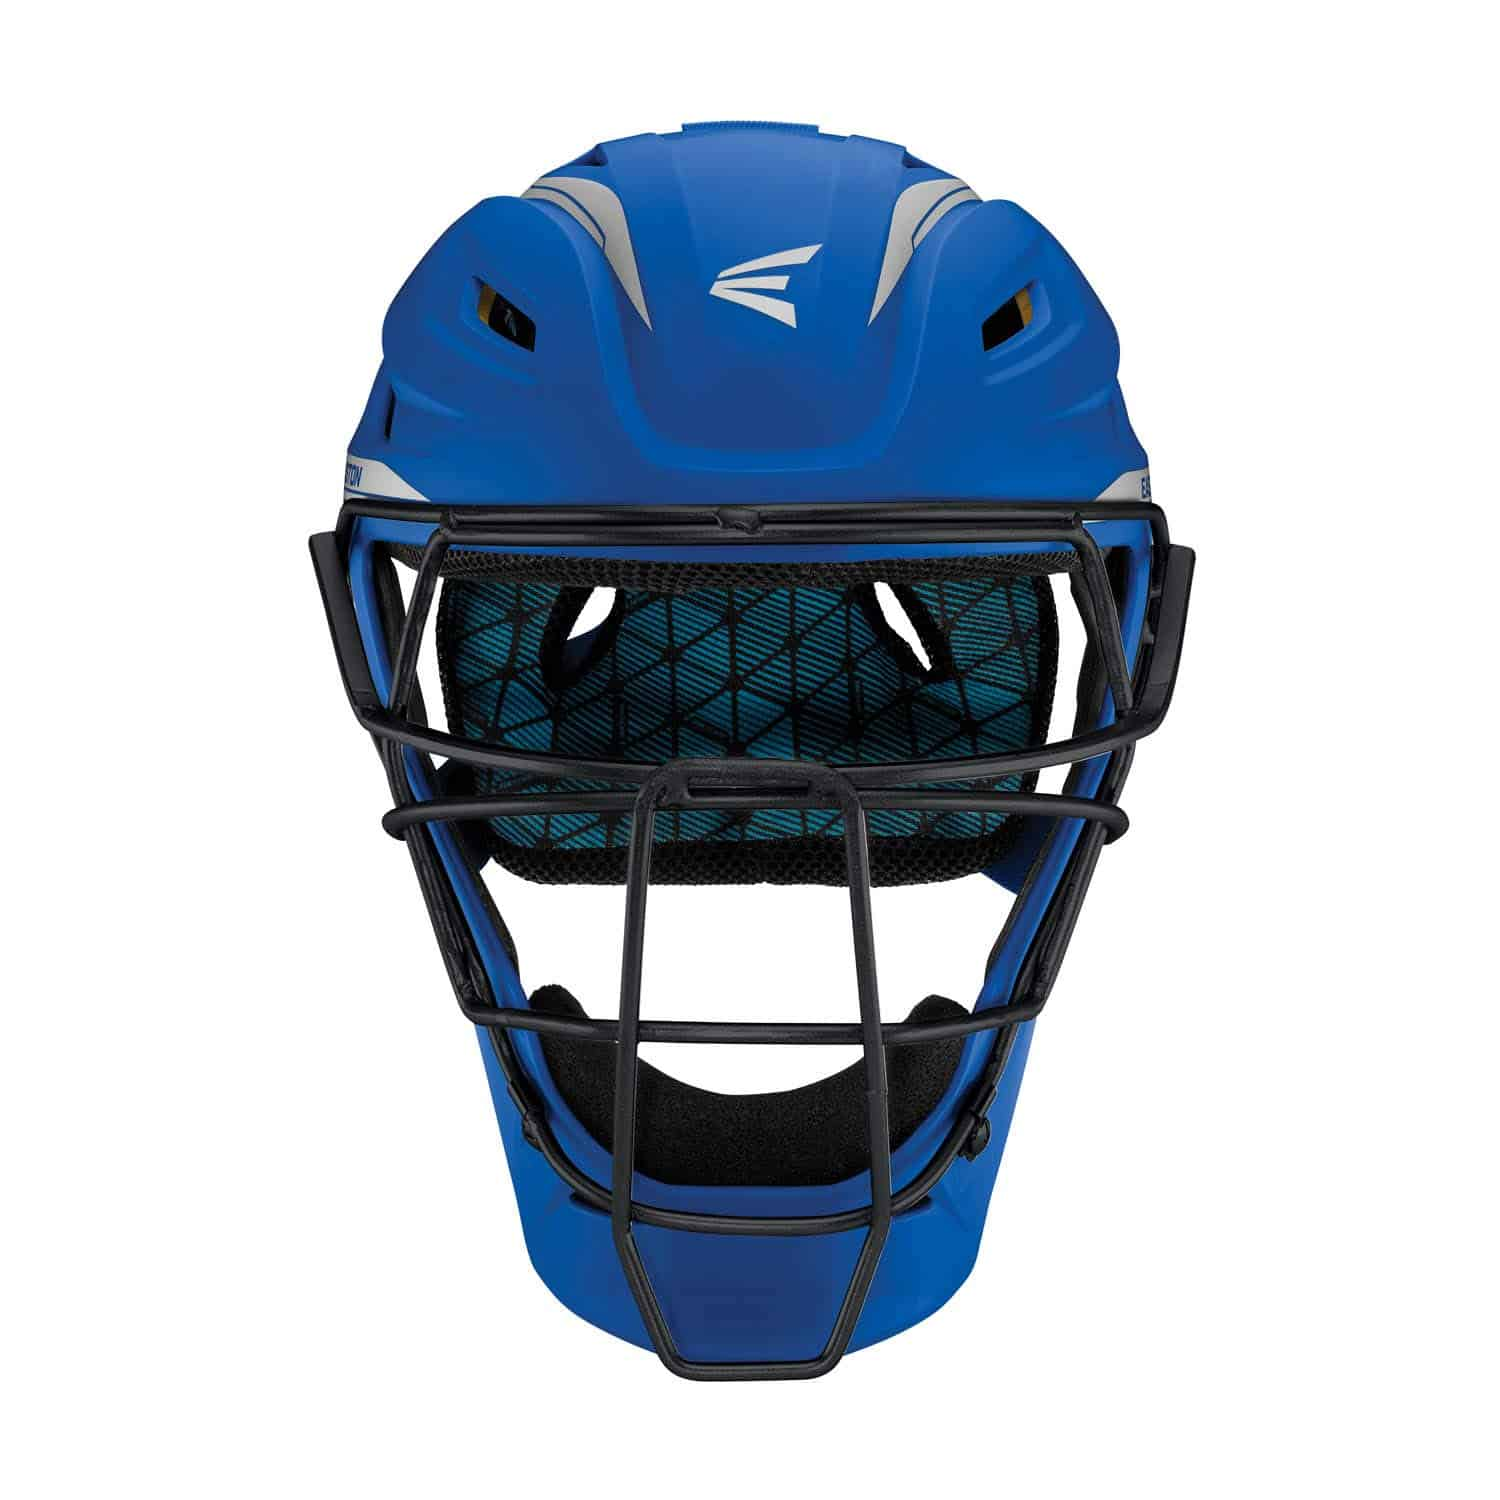 Easton Pro X Baseball Catcher's Mask